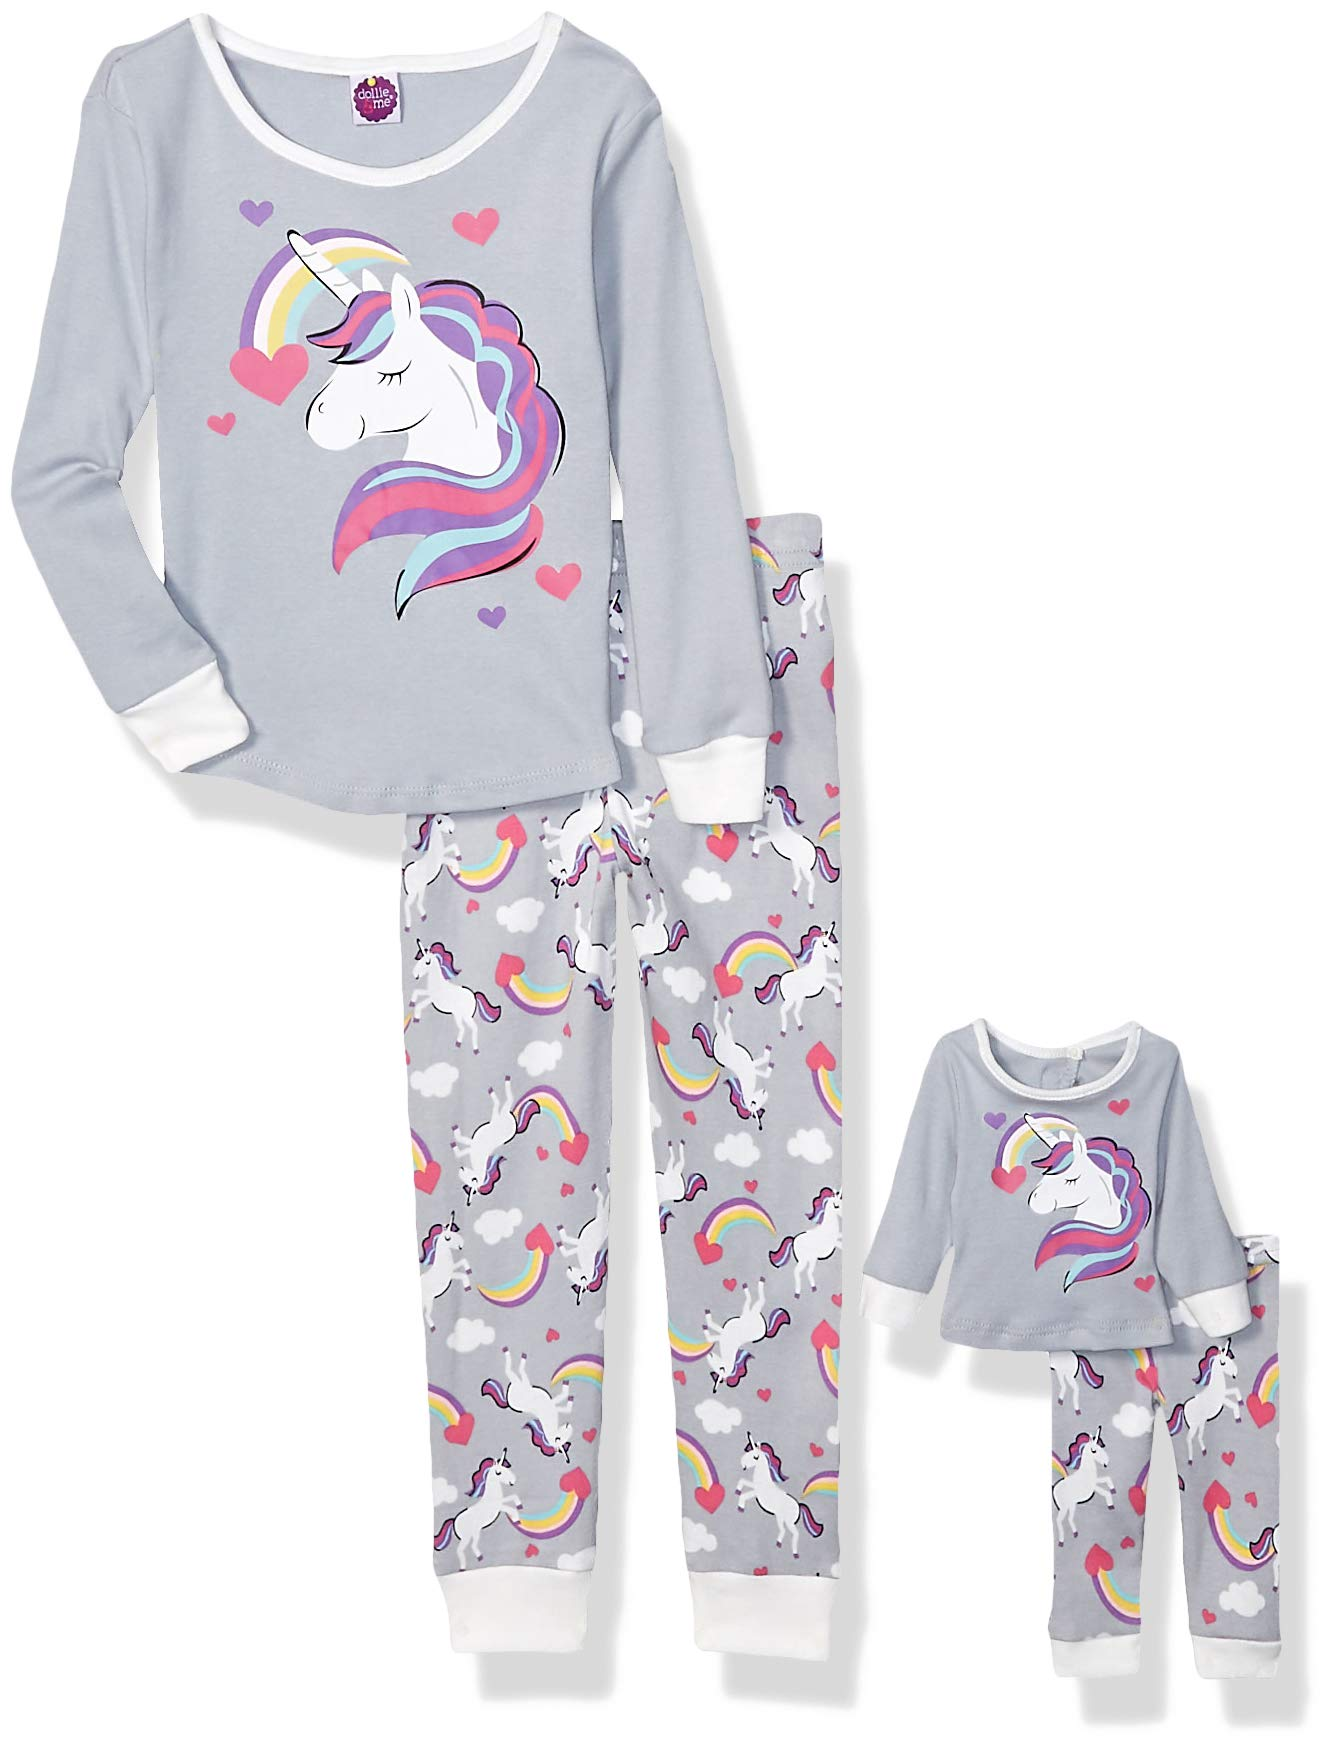 Dollie & Me Girls' Snug Fit Pajamas with Matching Doll Outfit, 4-Piece